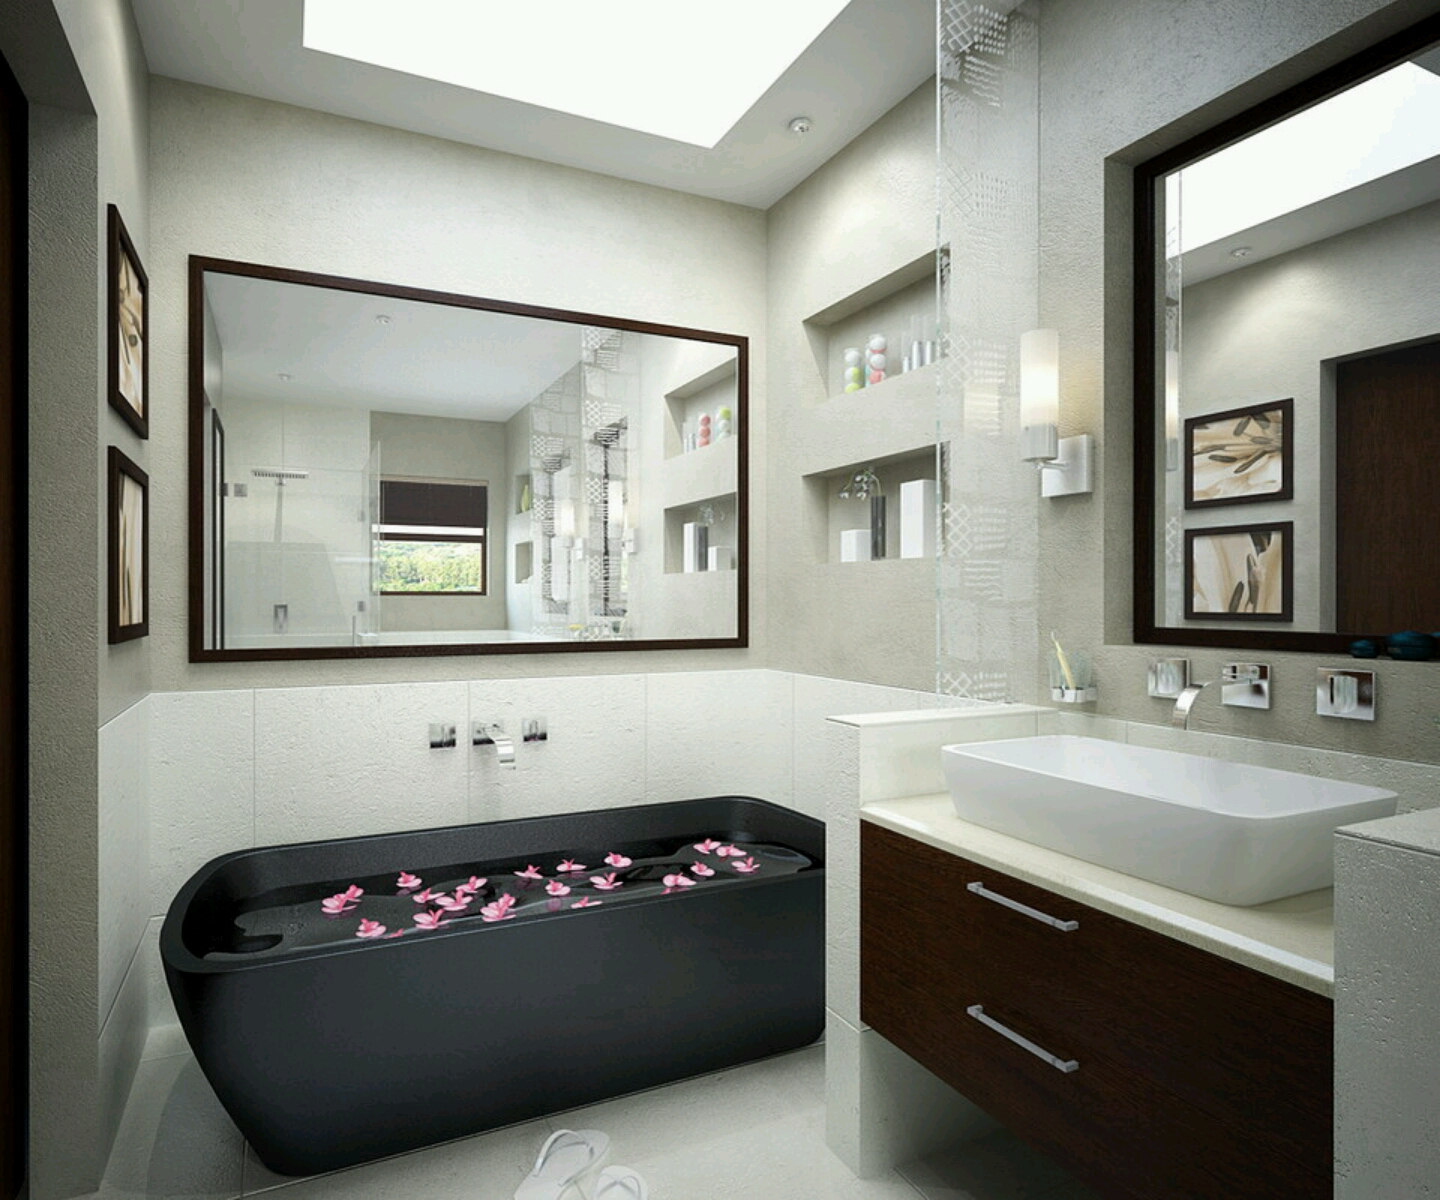 28 model modern bathroom vanities ideas Modern design of bathroom